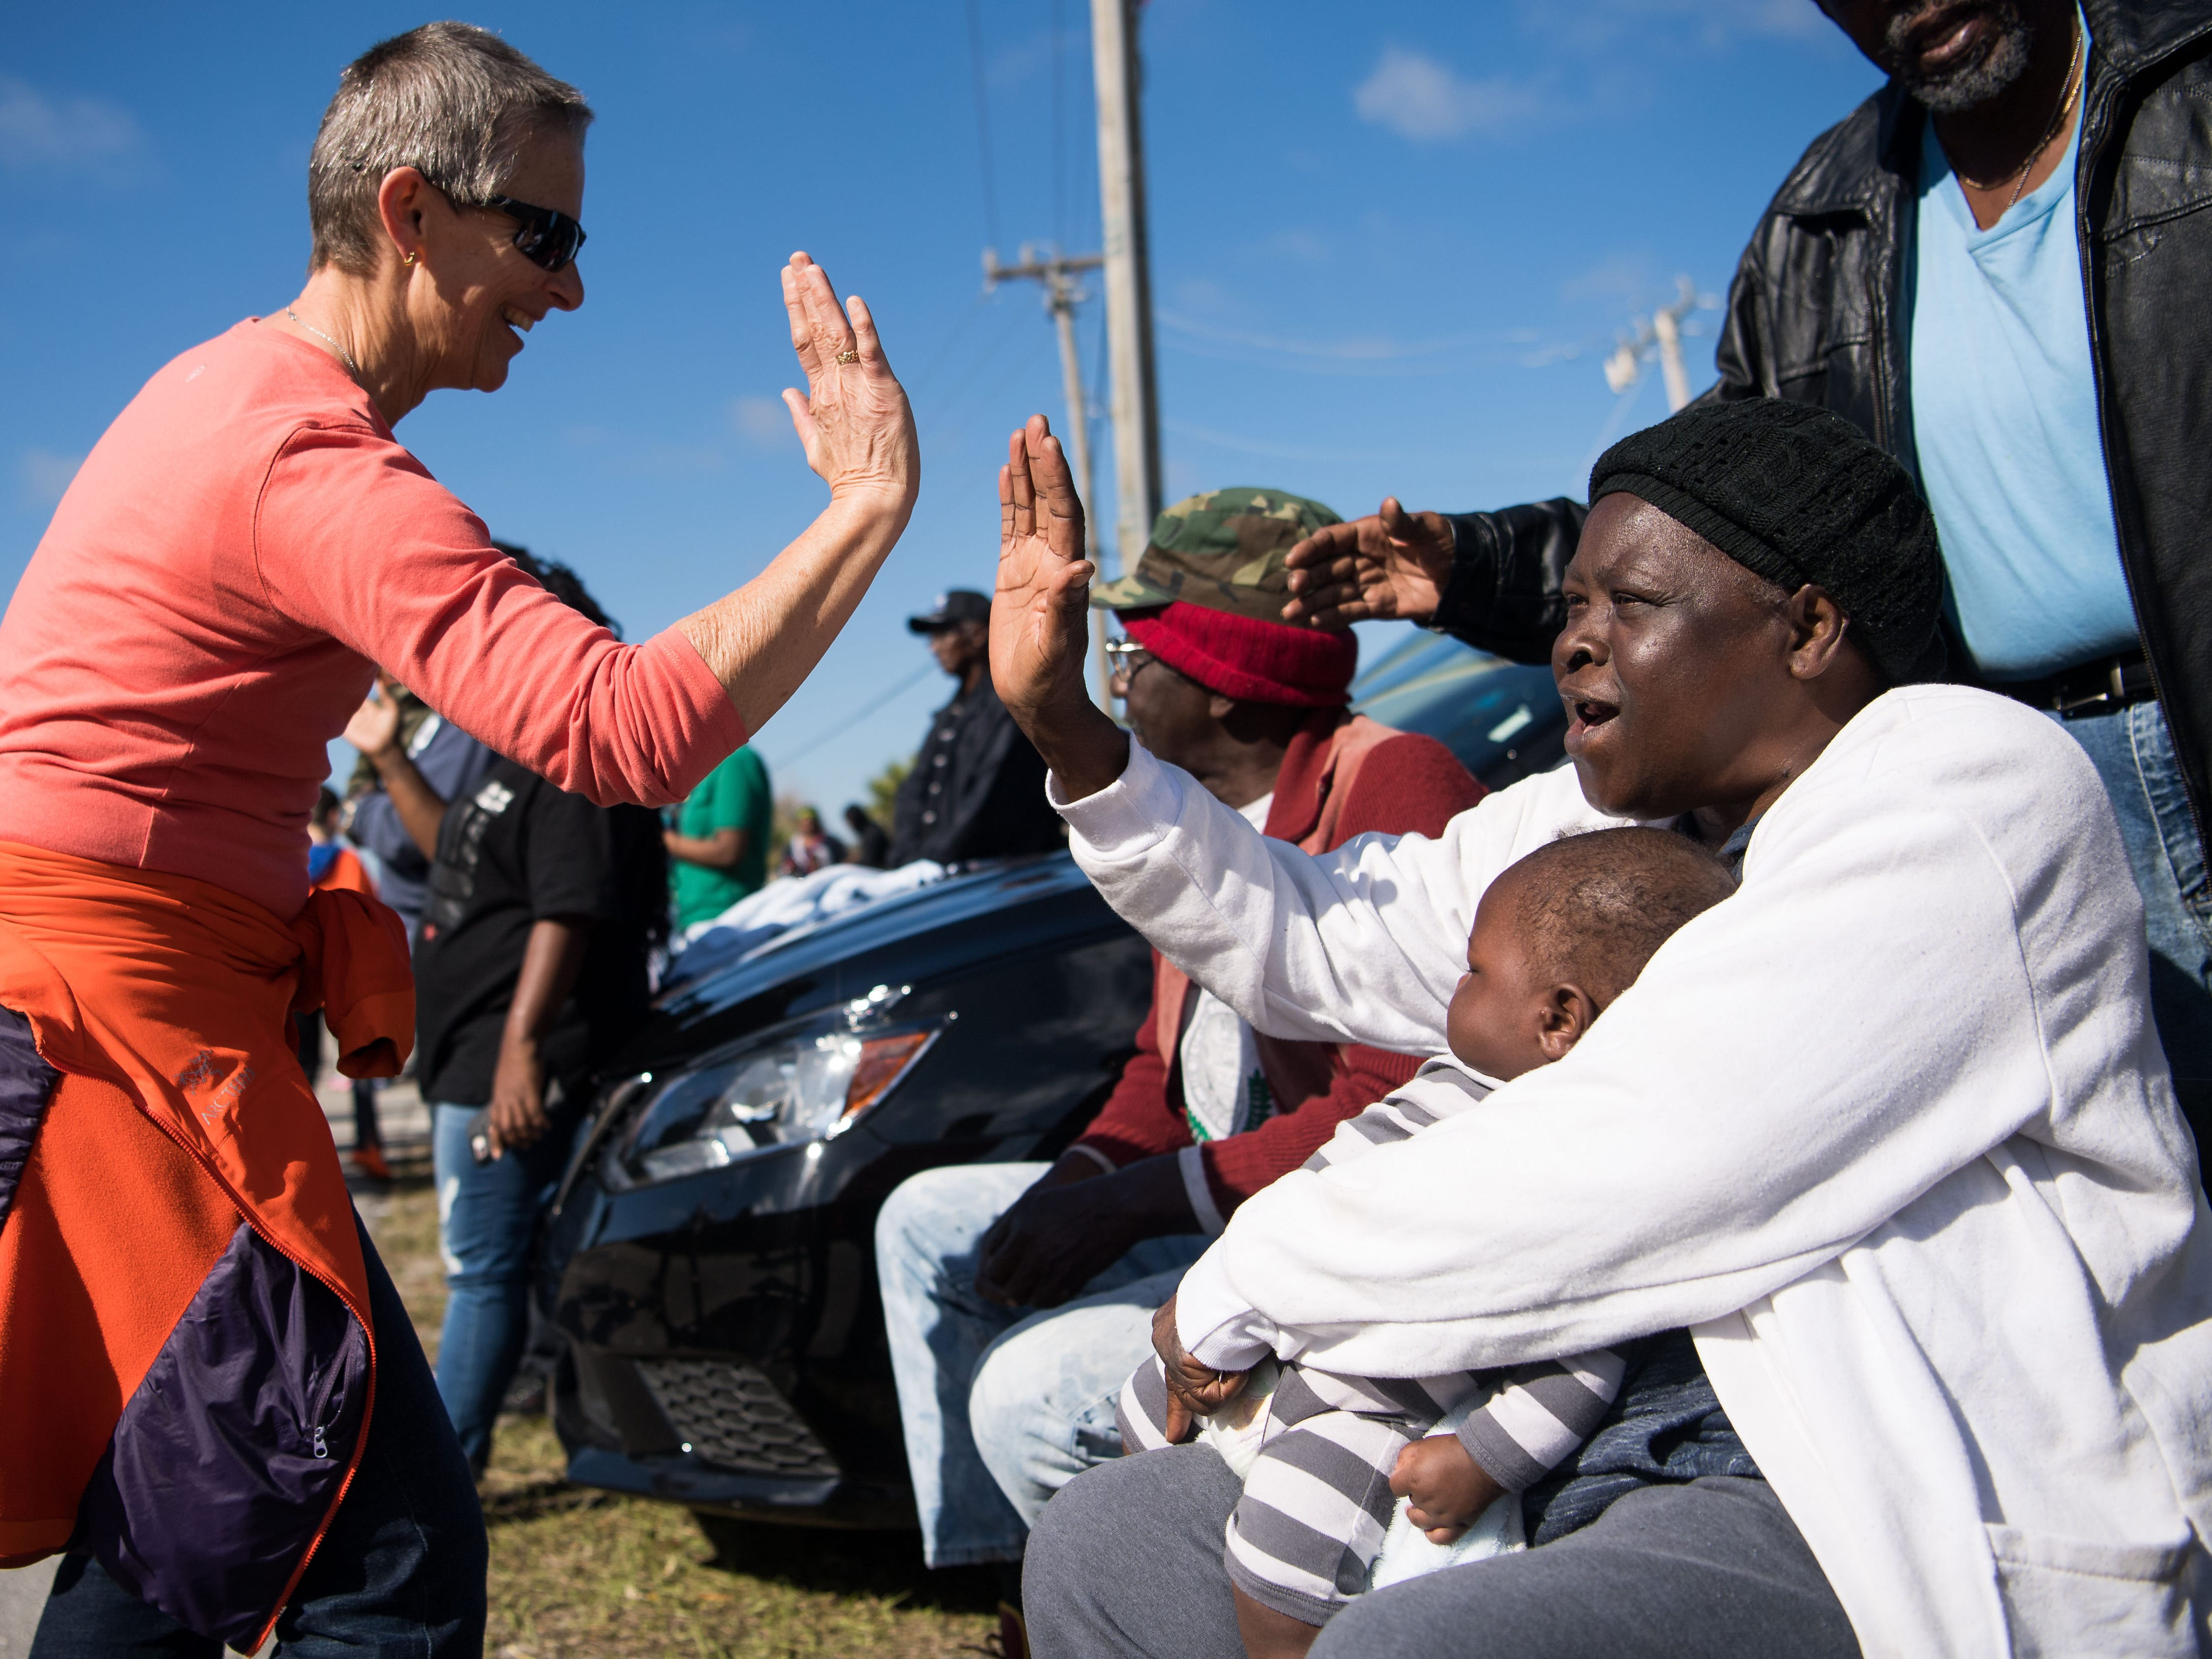 "Lifelong Gifford resident Corine Smith surrounded by her grandchildren and great-grandchildren and other family members is high-fived by Dhumavati Jaya during the 2019 MLK Parade in Gifford, Fla.  ""When they said he got shot, I was 10 years old at that time...I still listen to his speech, it means a lot,"" Smith said. ""God made us all, you know, he just made different colors,"" she added, ""but we are all his children."" The Dr. Martin Luther King Jr. Birthday Committee of Indian River County organized the parade, which ended in a festival at Gifford Park."